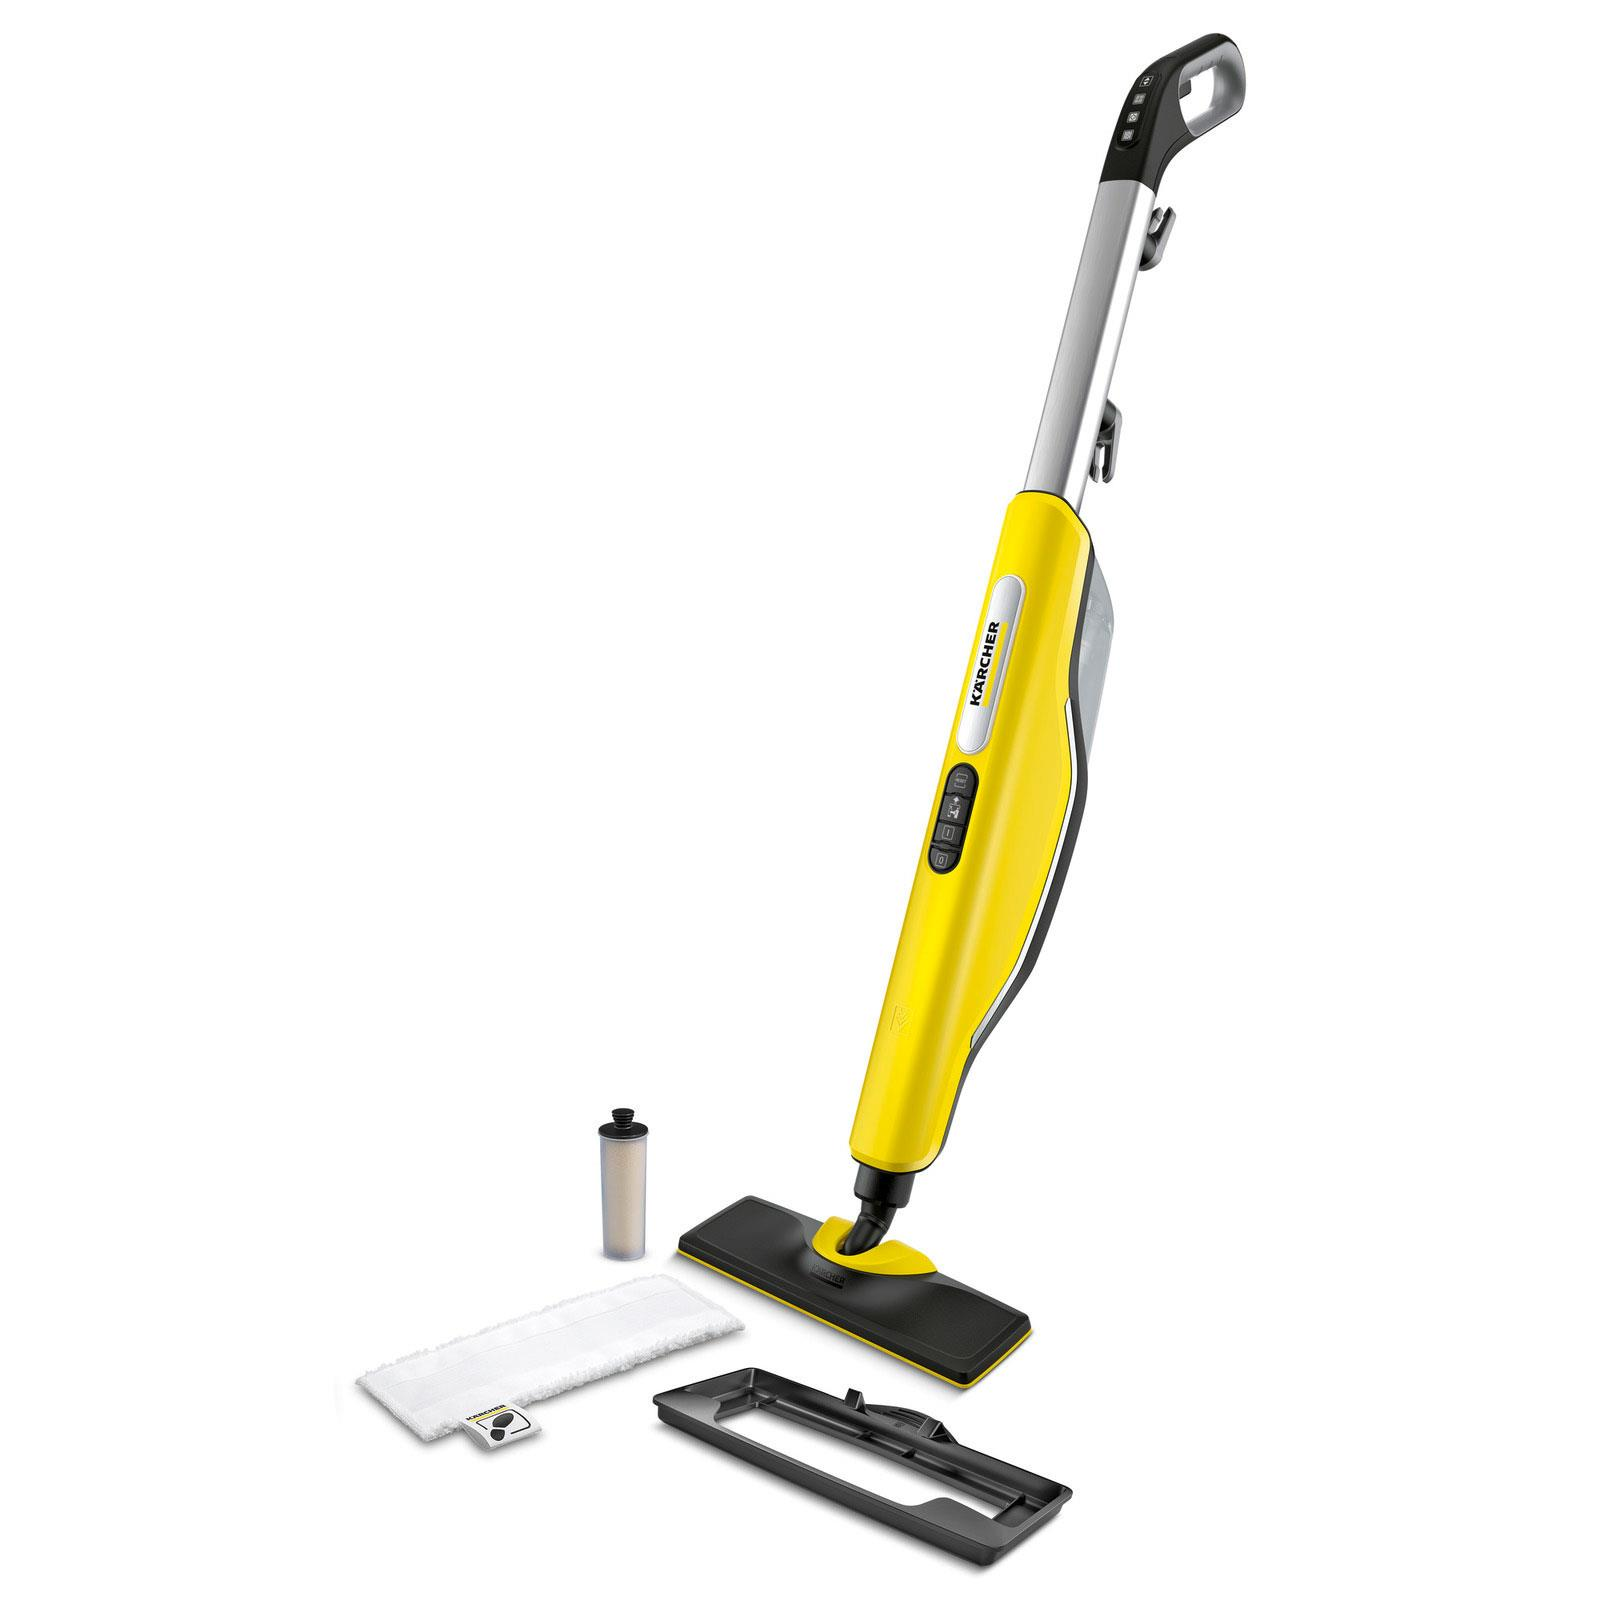 SC 3 Upright EasyFix *EU 1.513-330.0 KARCHER - KARCHER PREMIER CENTER